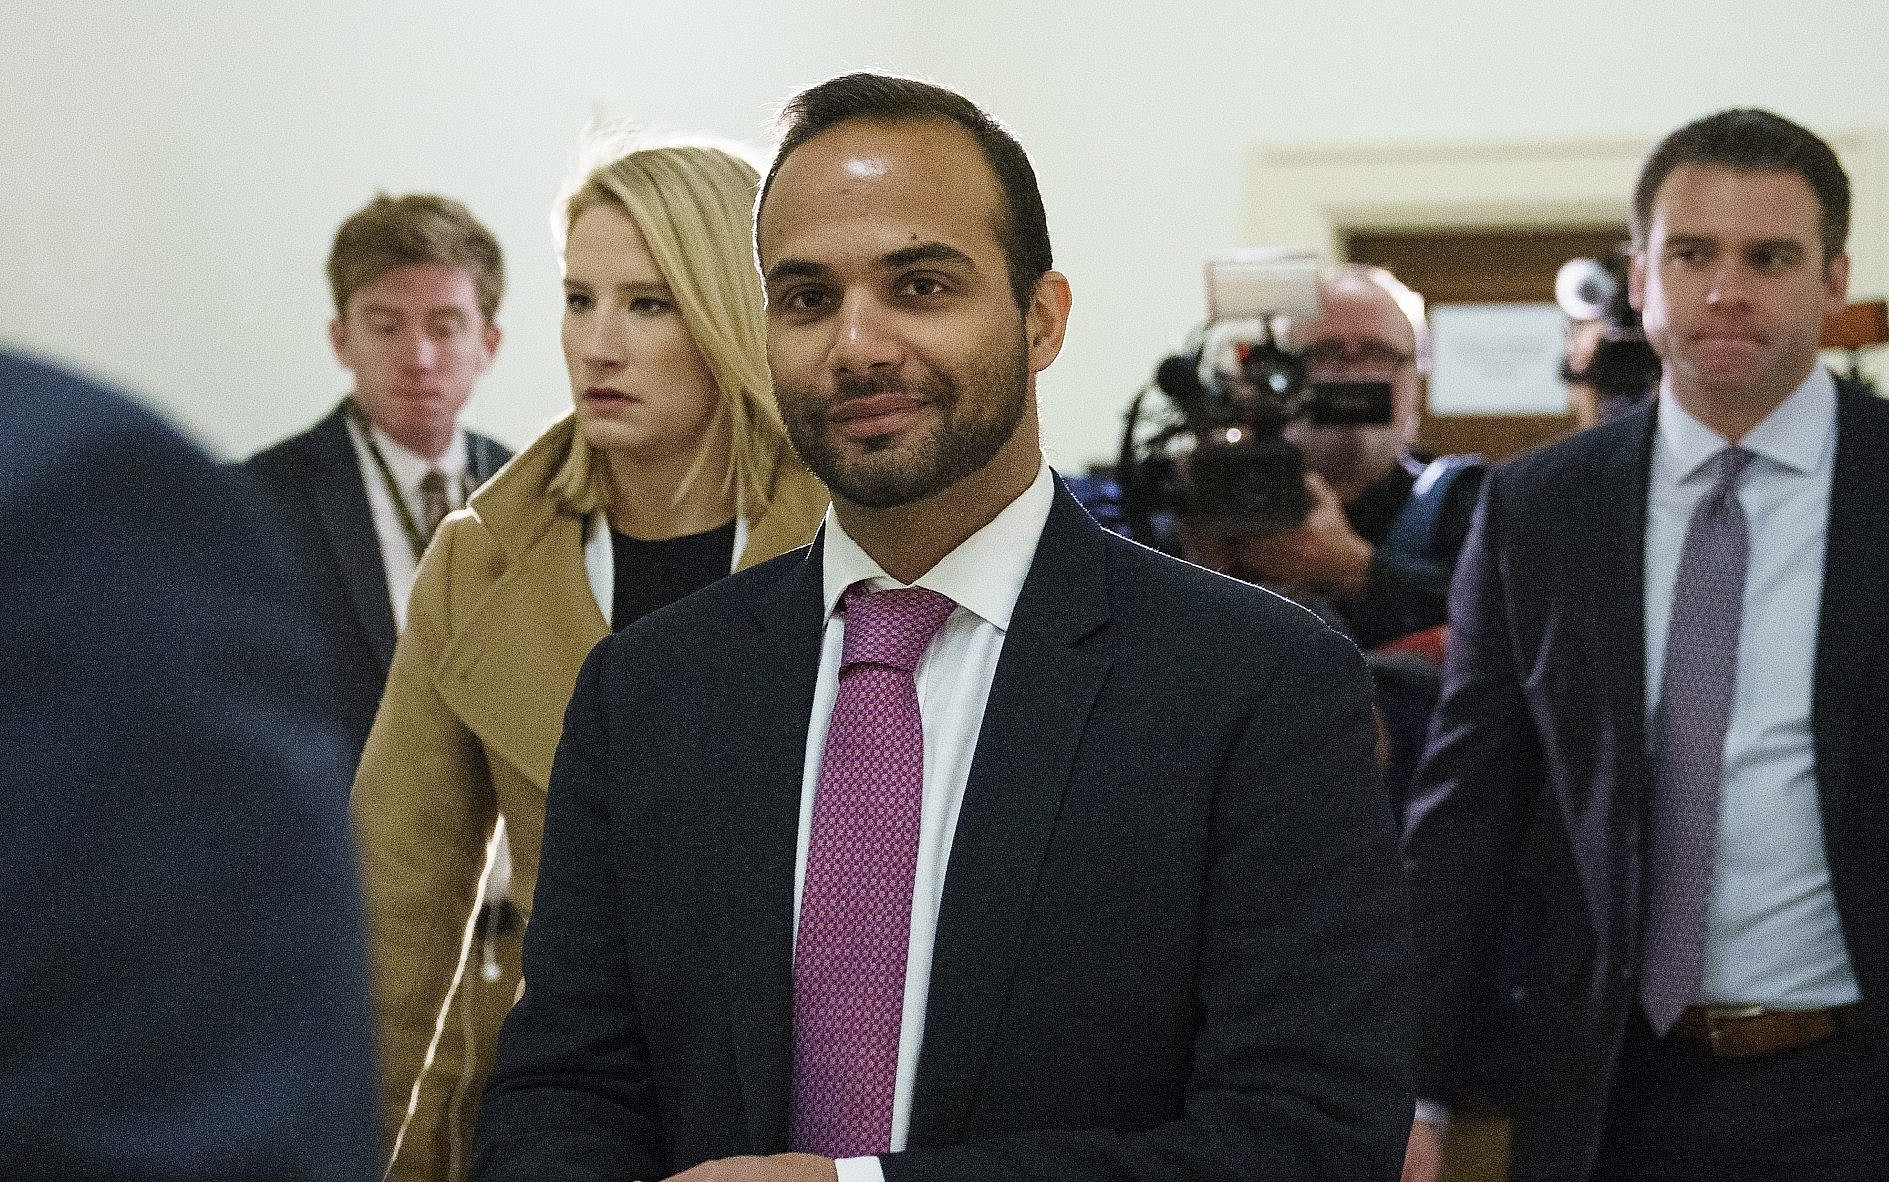 Judge Orders Former Trump Campaign Adviser Papadopoulos to Jail